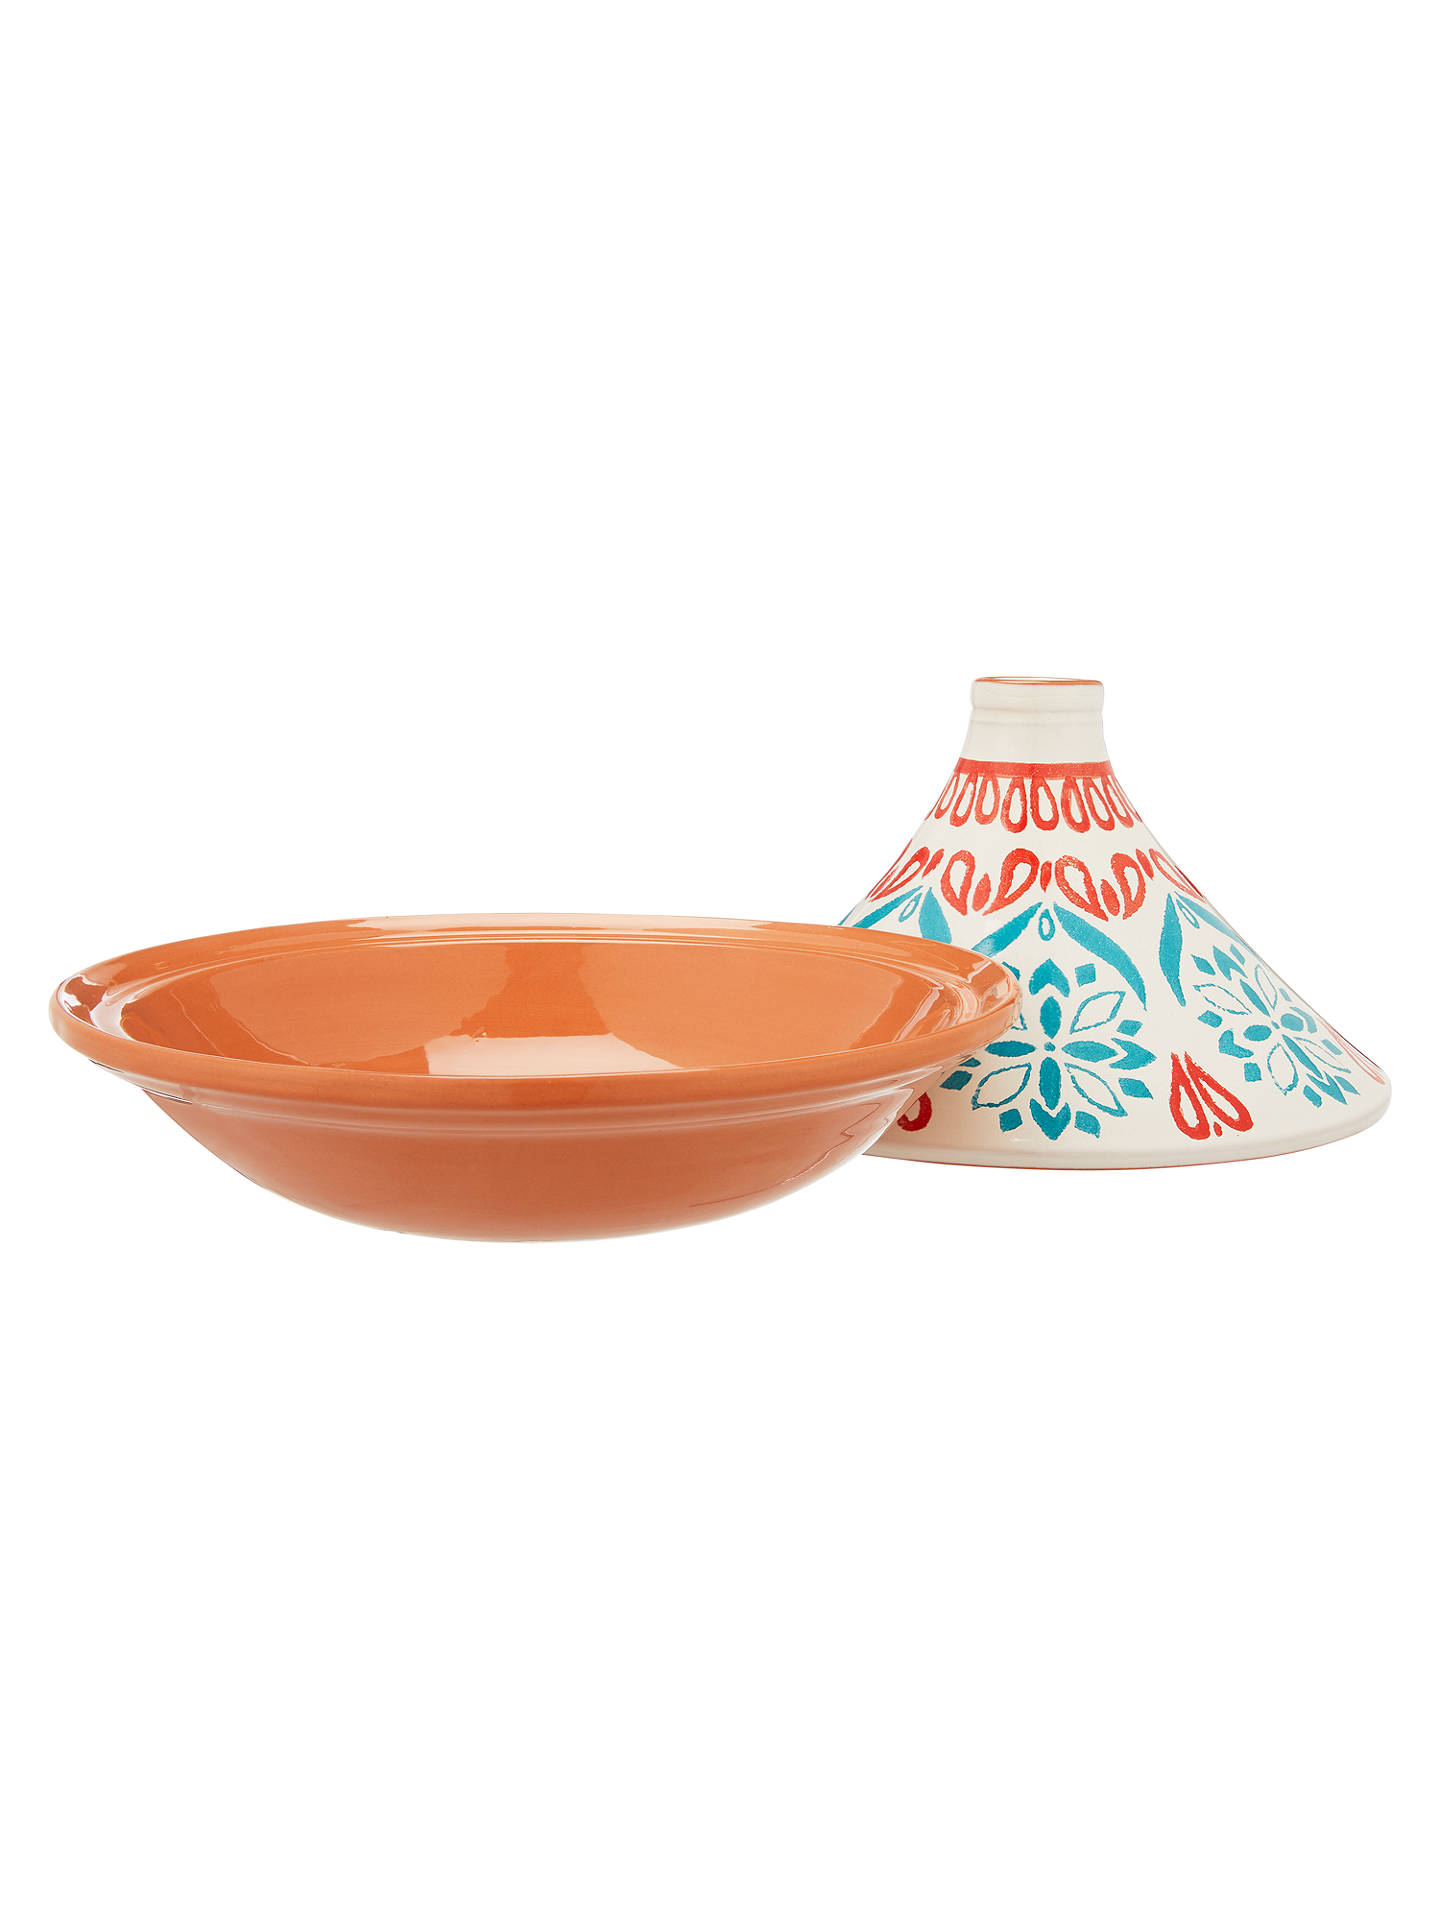 BuyJohn Lewis & Partners Alfresco Terracotta Patterned Tagine, White/Multi Online at johnlewis.com